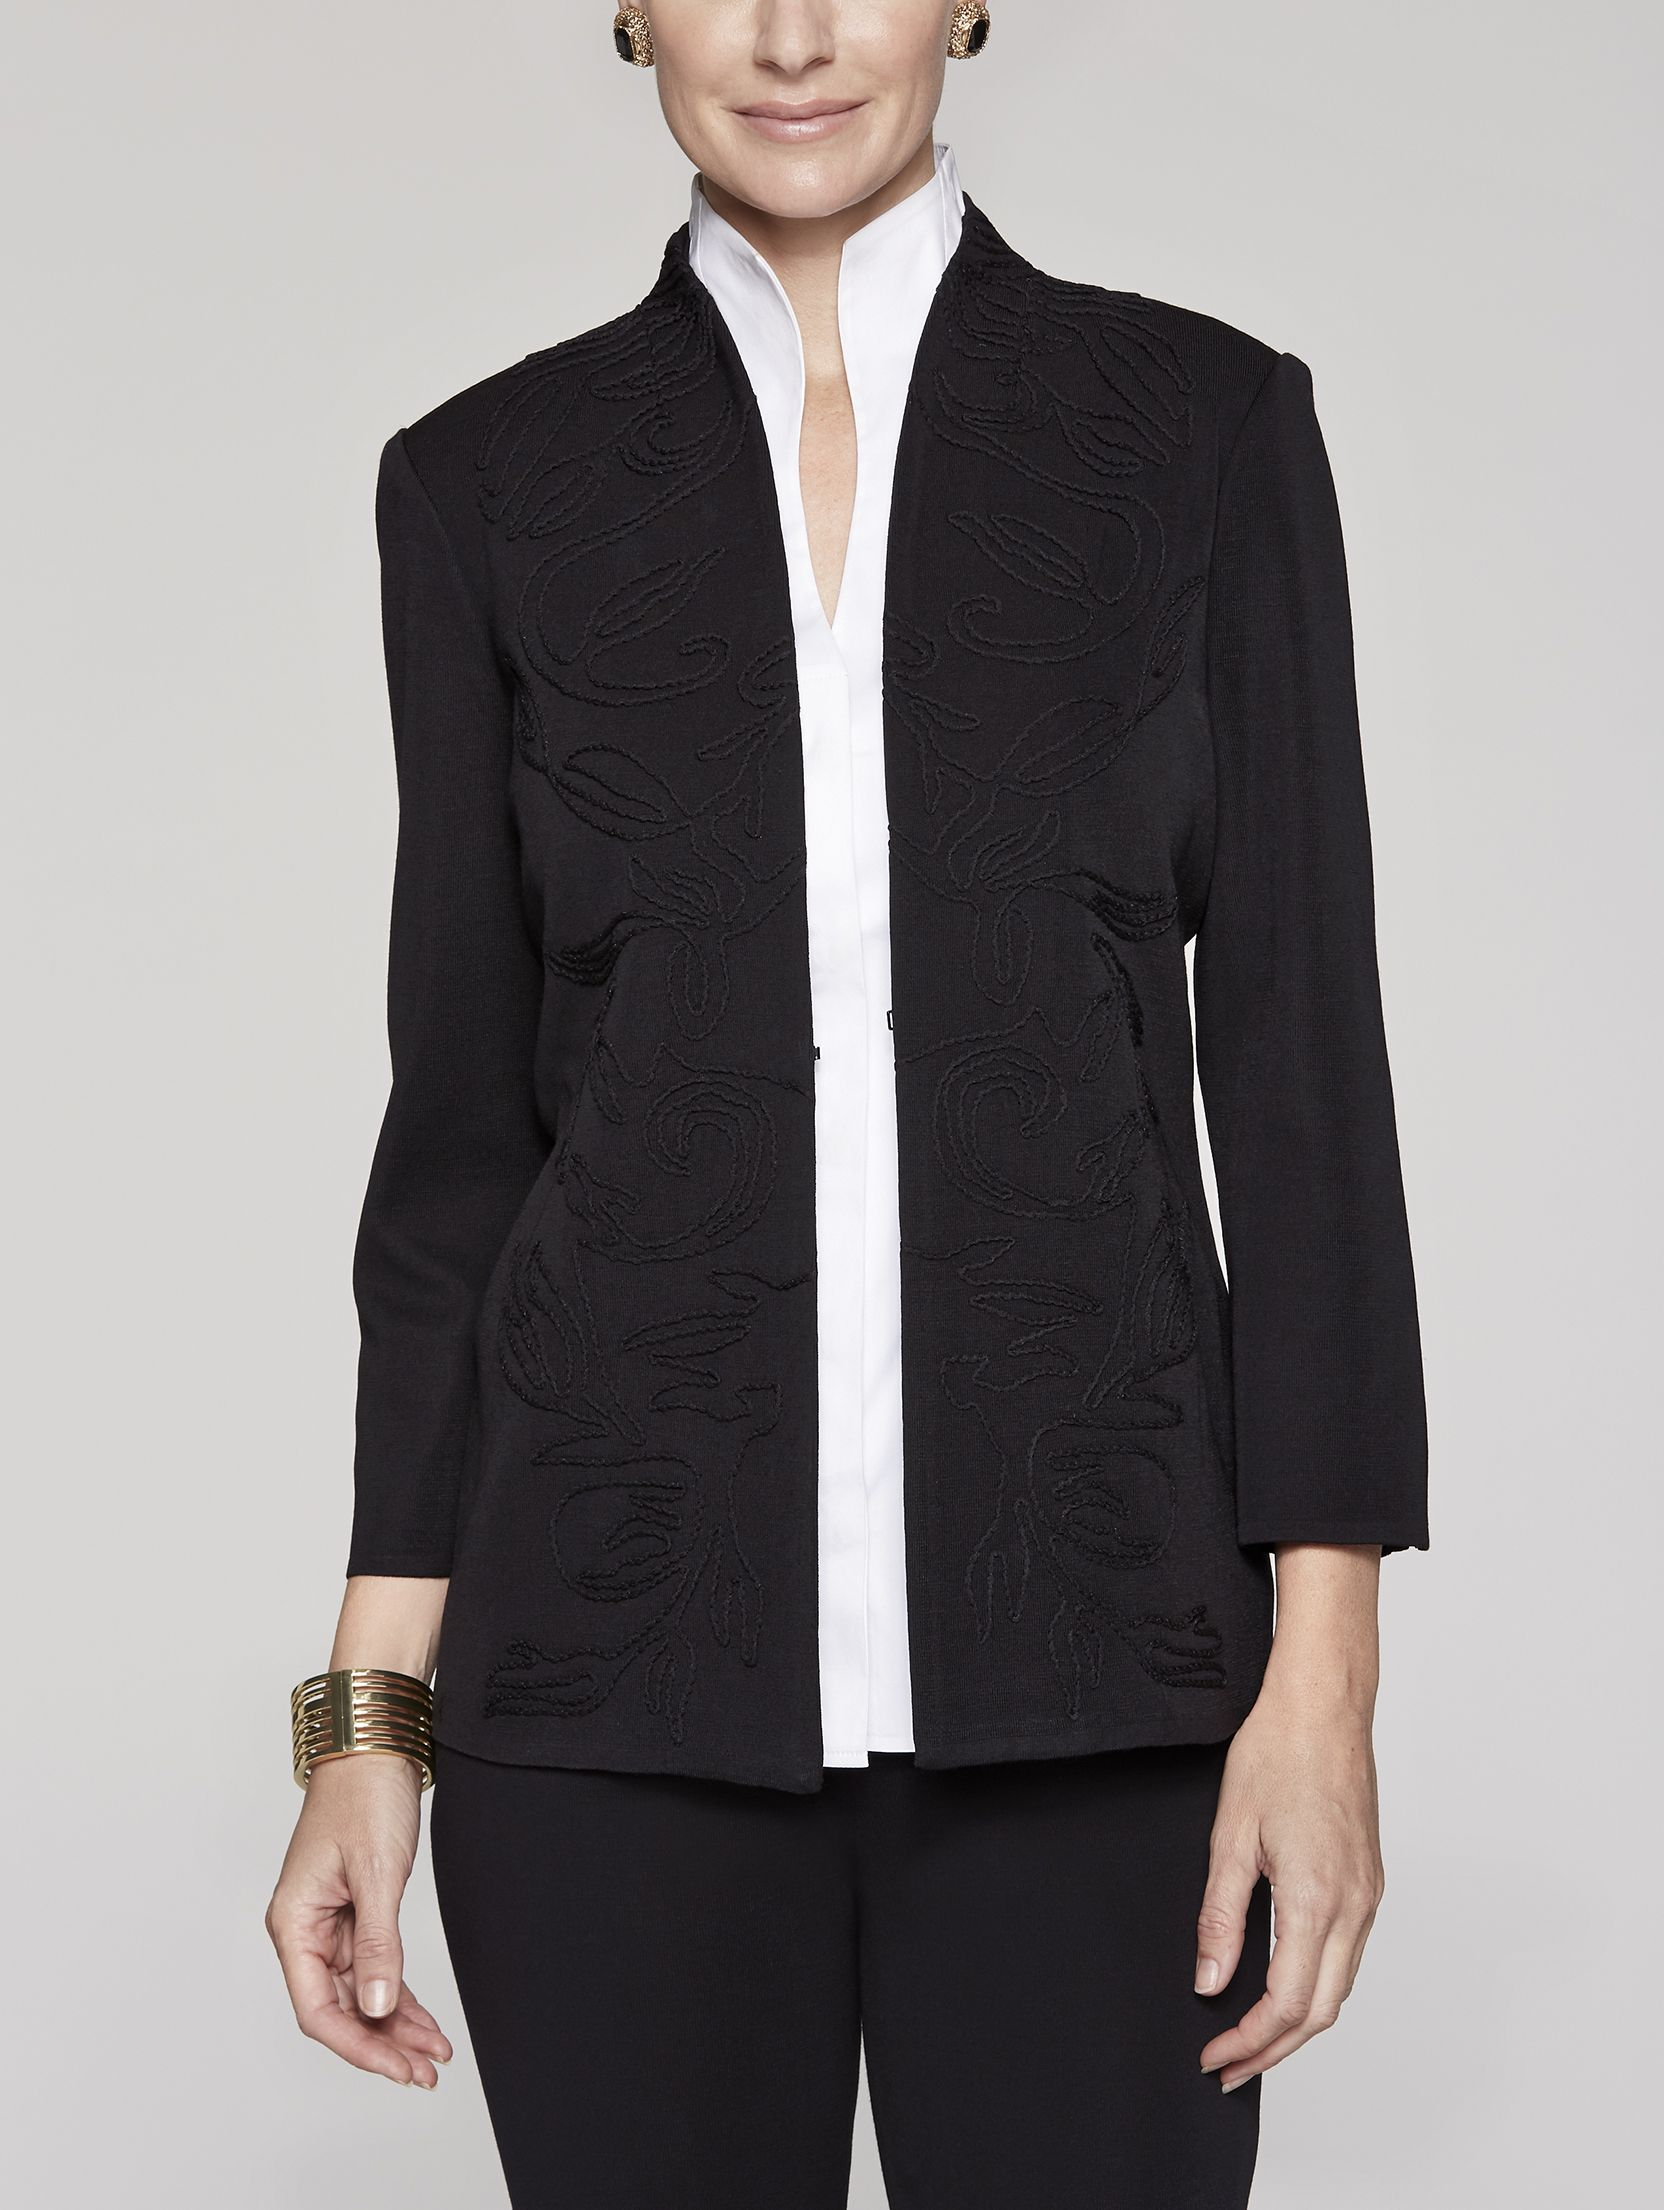 A jacket with chic finishes that motivates you to go back to work this  week.  Misook  MisookMoment  FashionForward  InstaFashion  AgelessStyle c079fbf6b